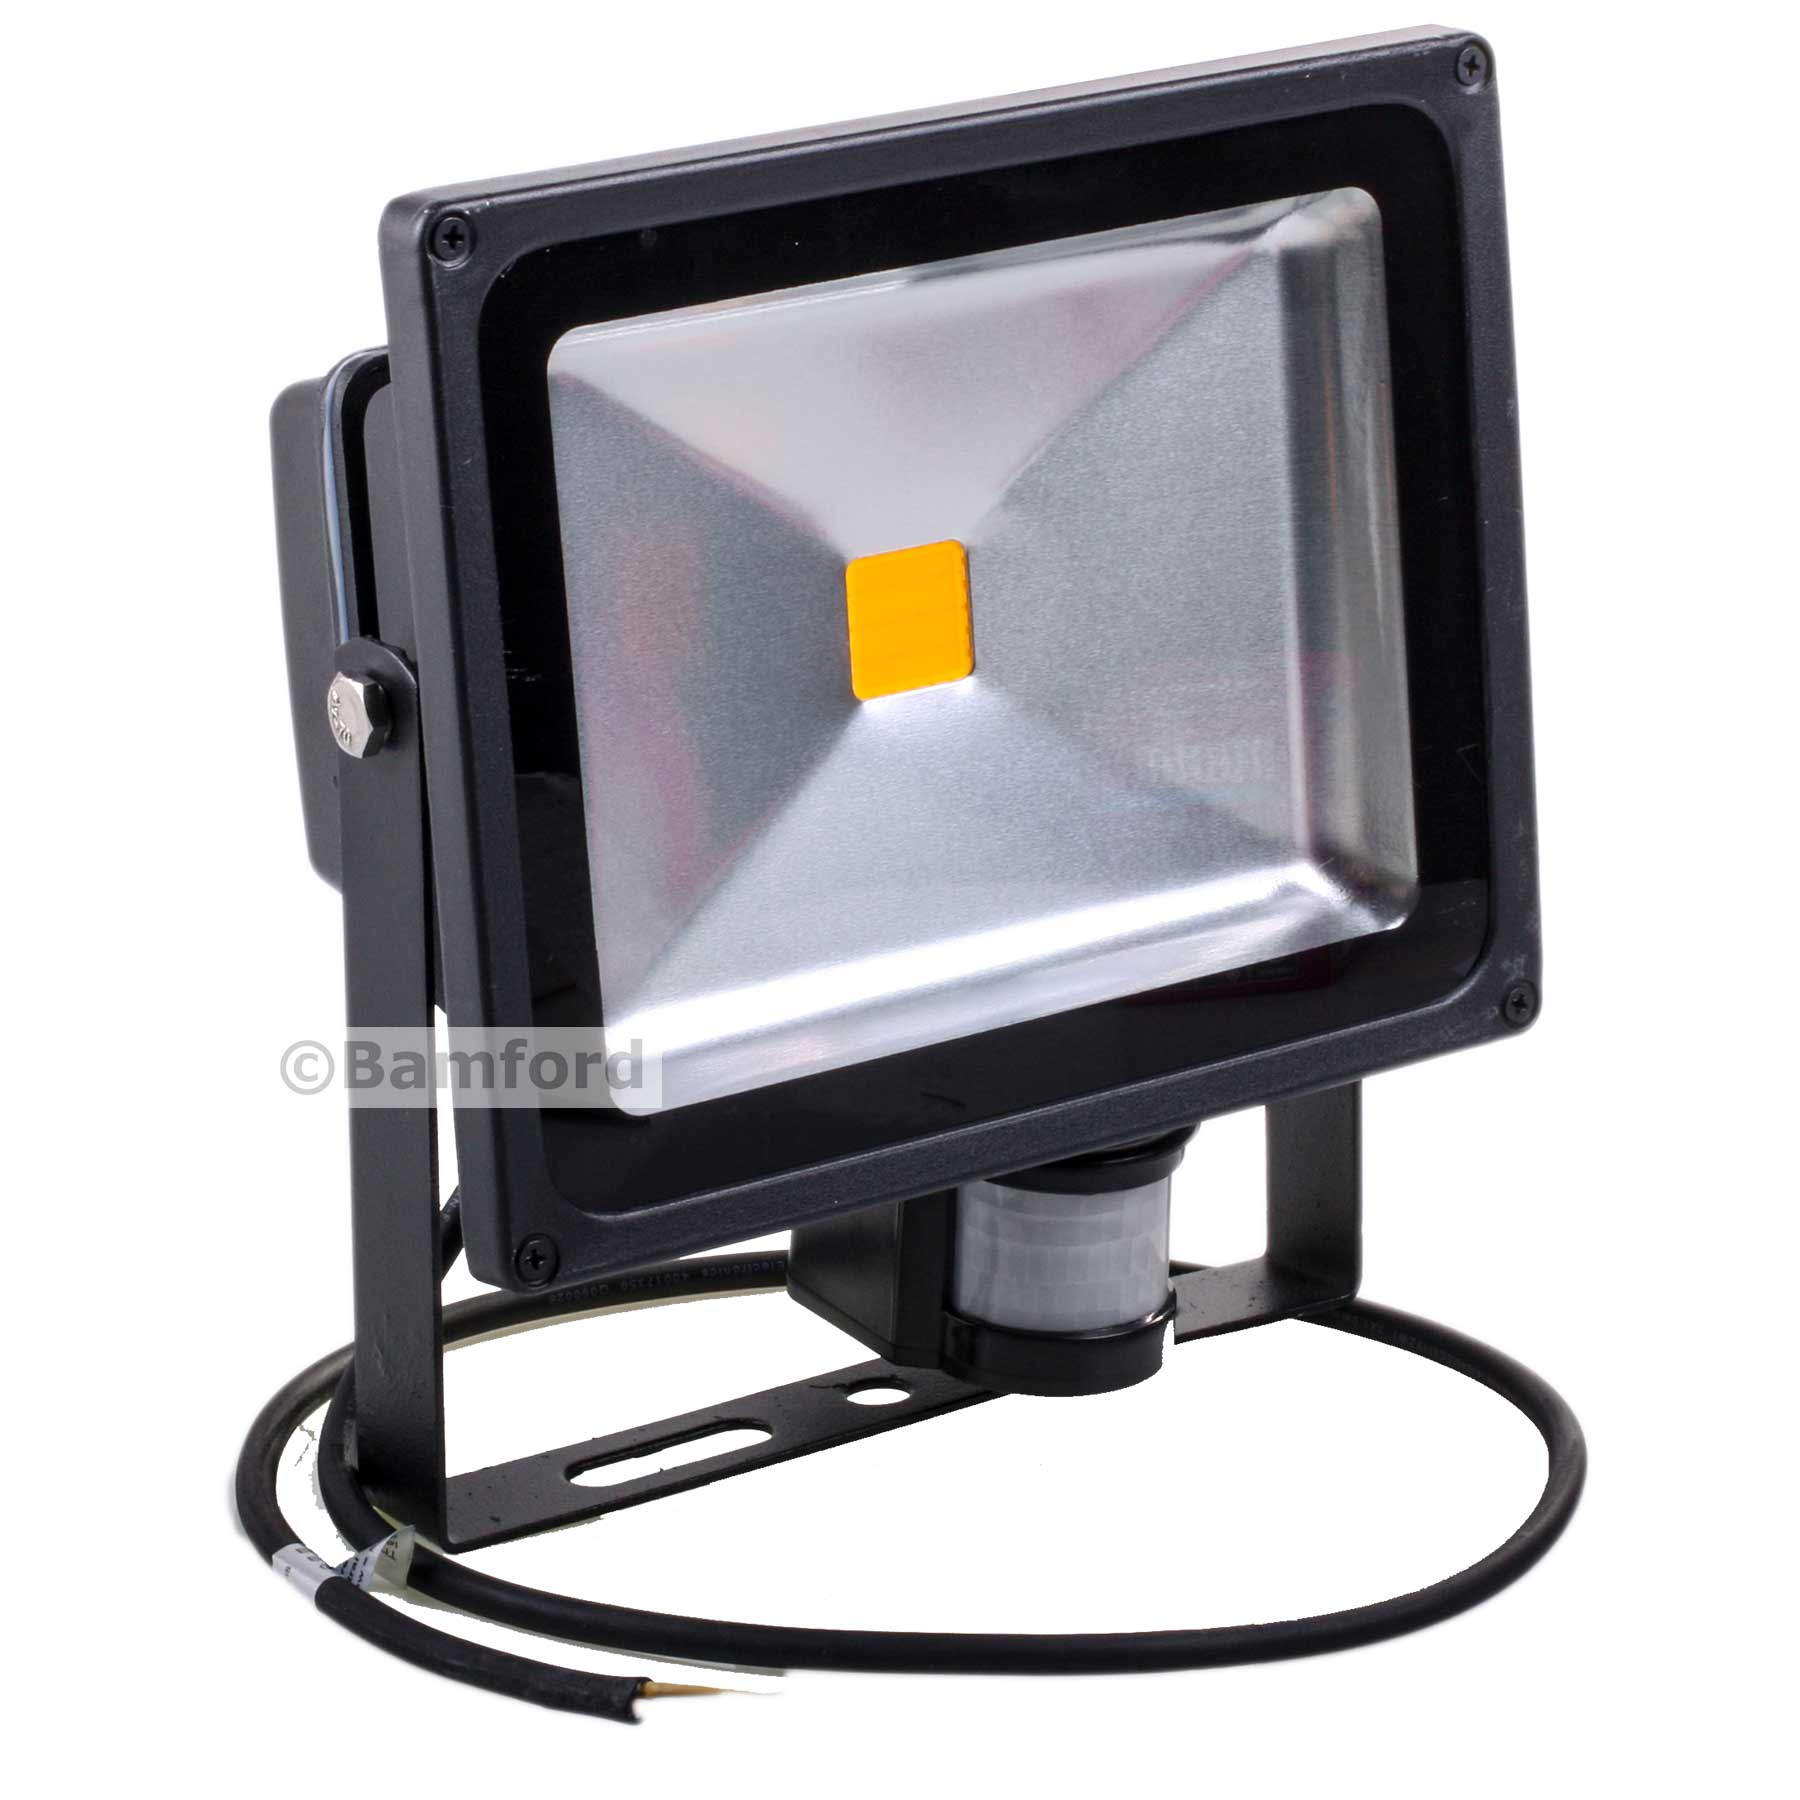 30w led guardian floodlight with pir home security. Black Bedroom Furniture Sets. Home Design Ideas